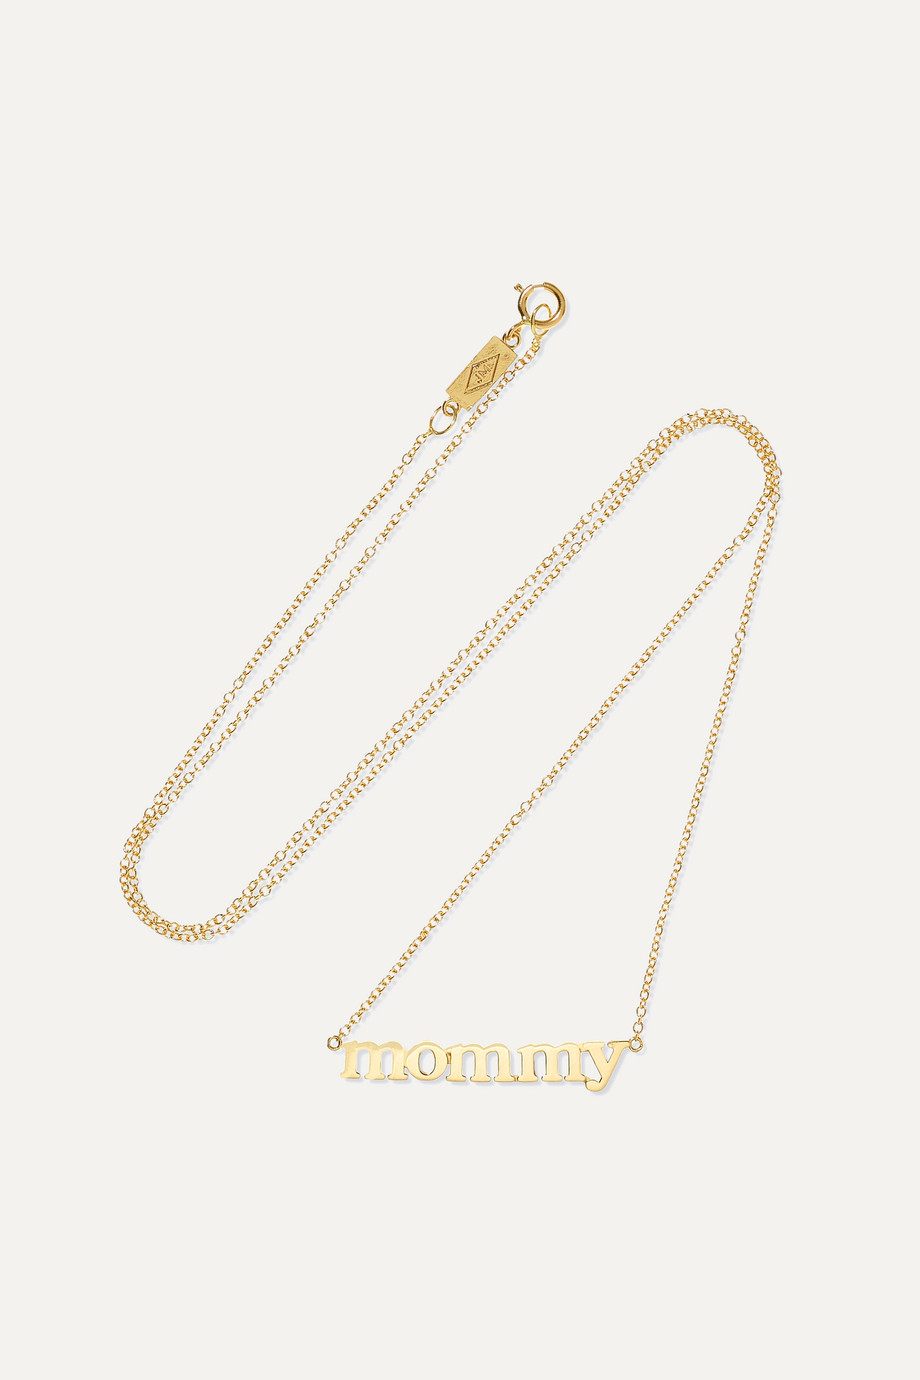 JENNIFER MEYER Mommy 18-karat gold necklace